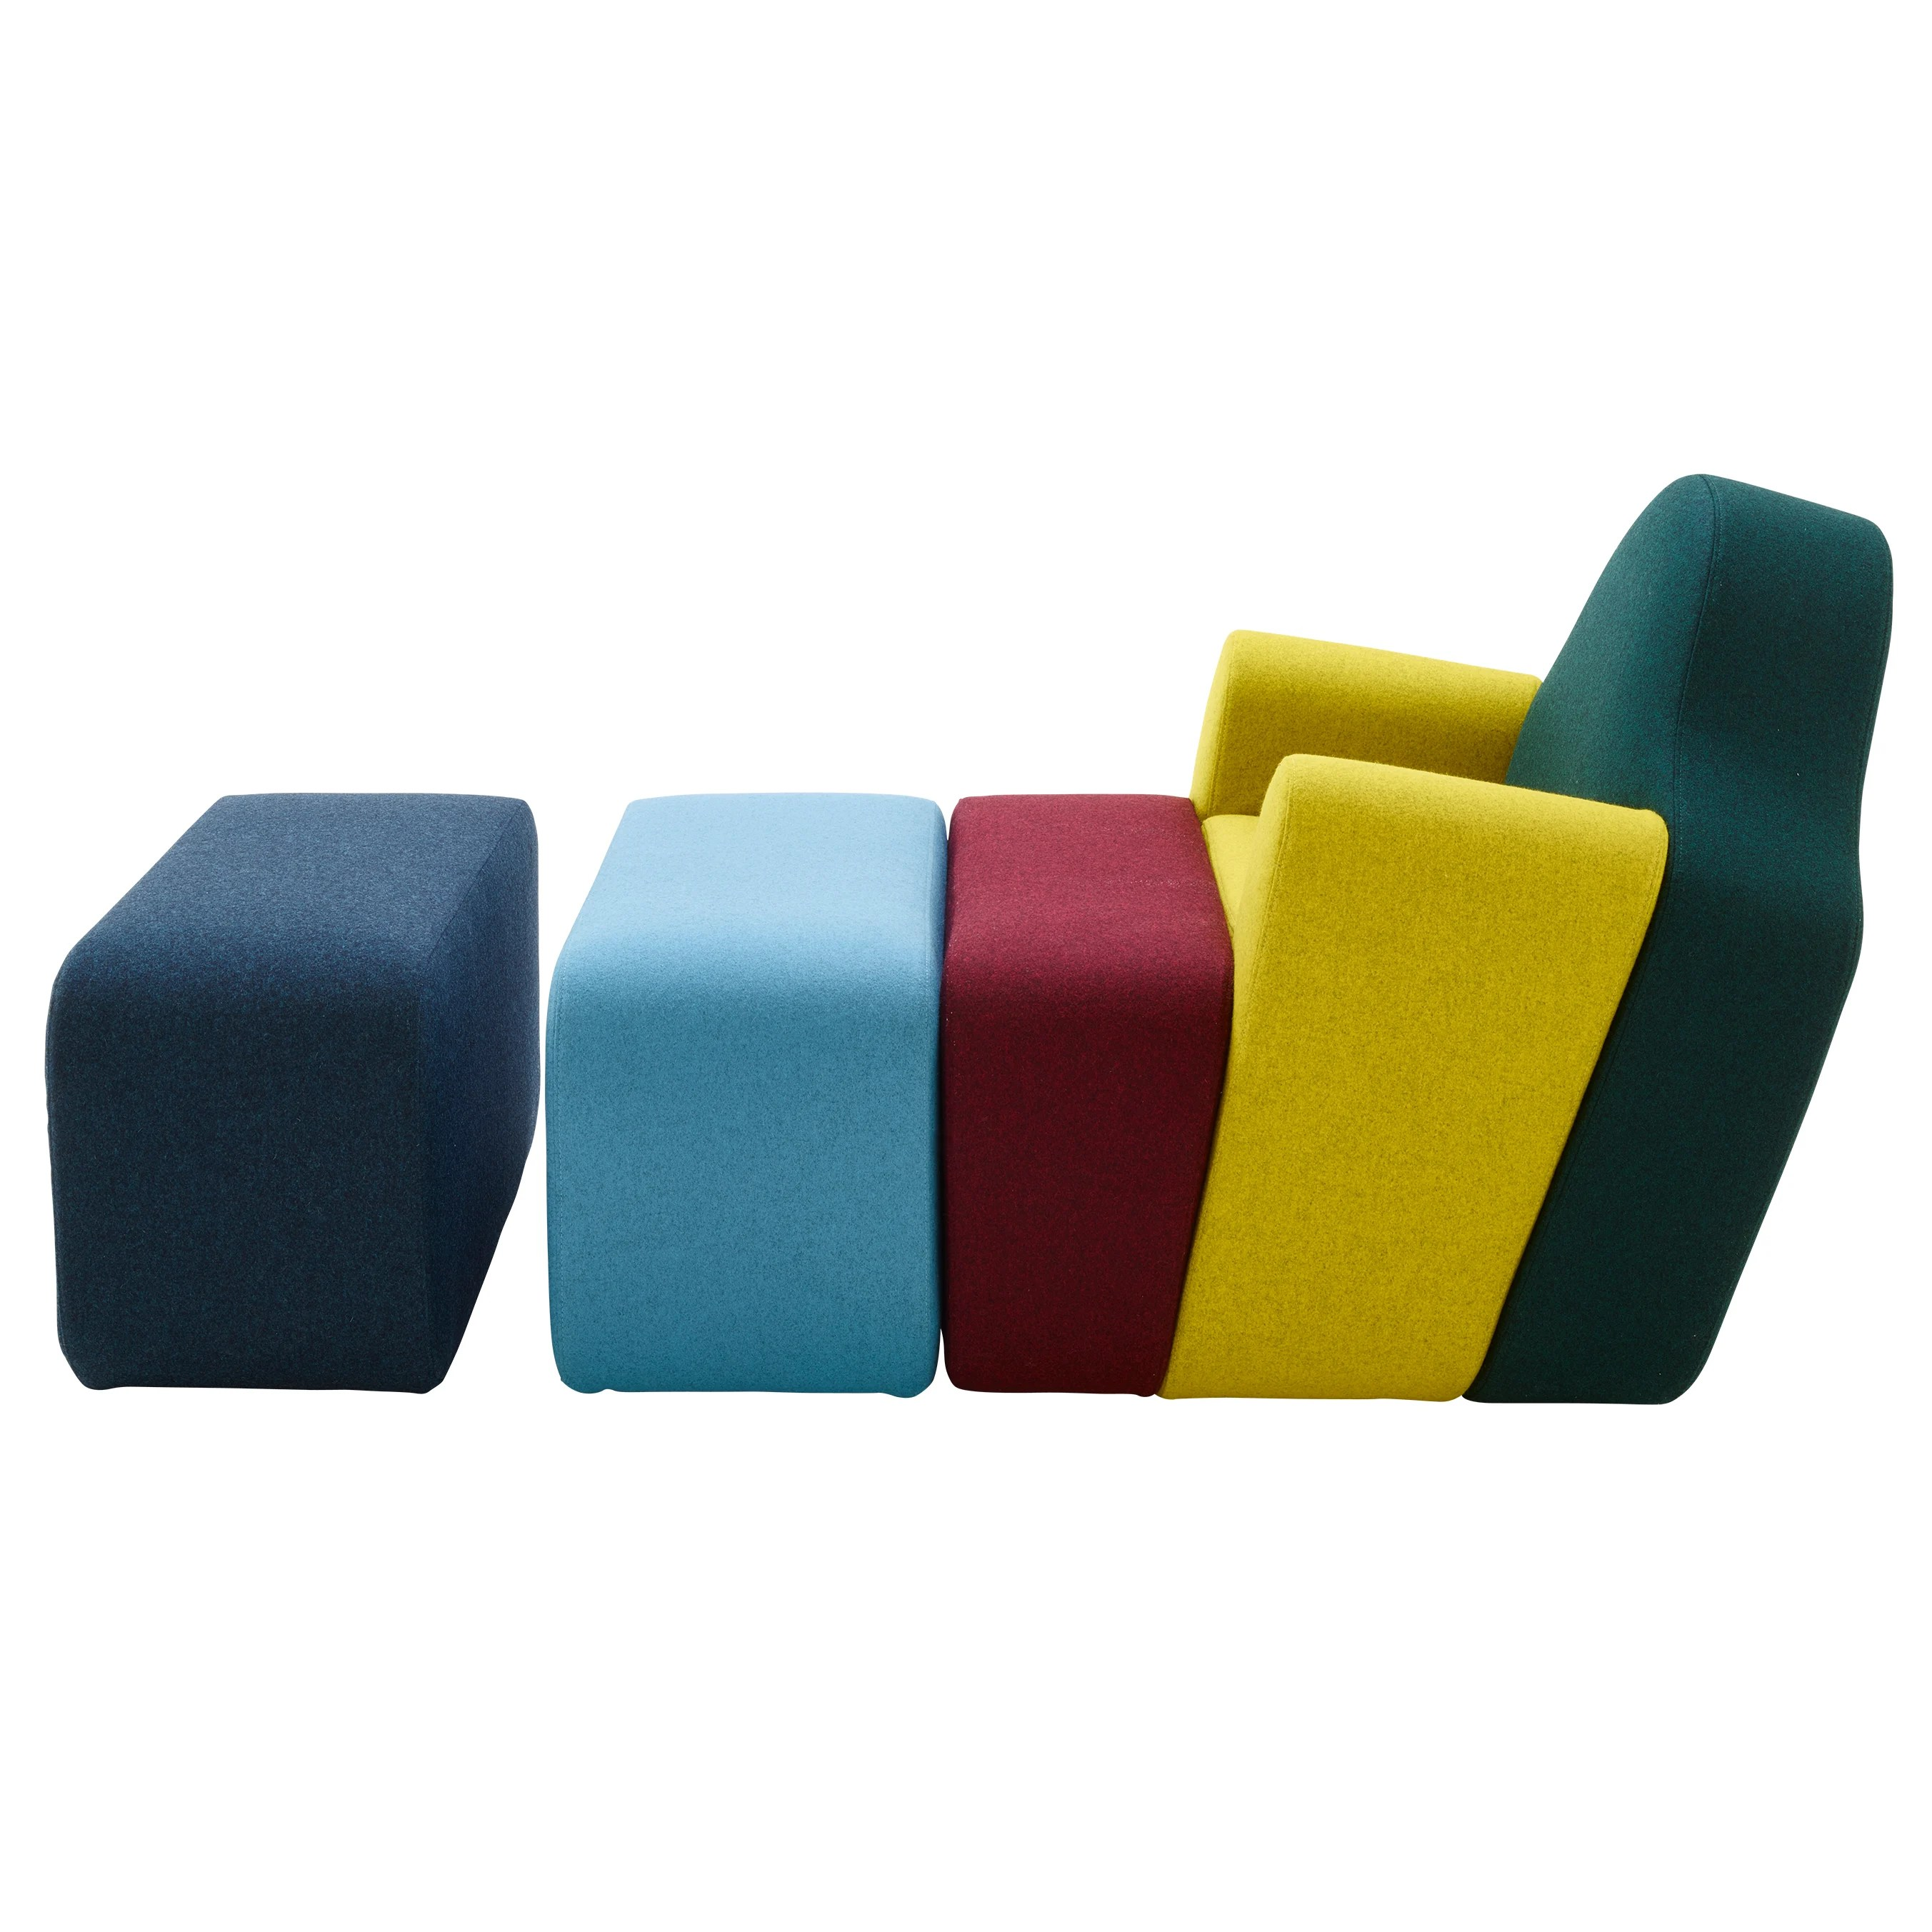 Console Ligne Roset Ligne Roset News Design And Products Dezeen